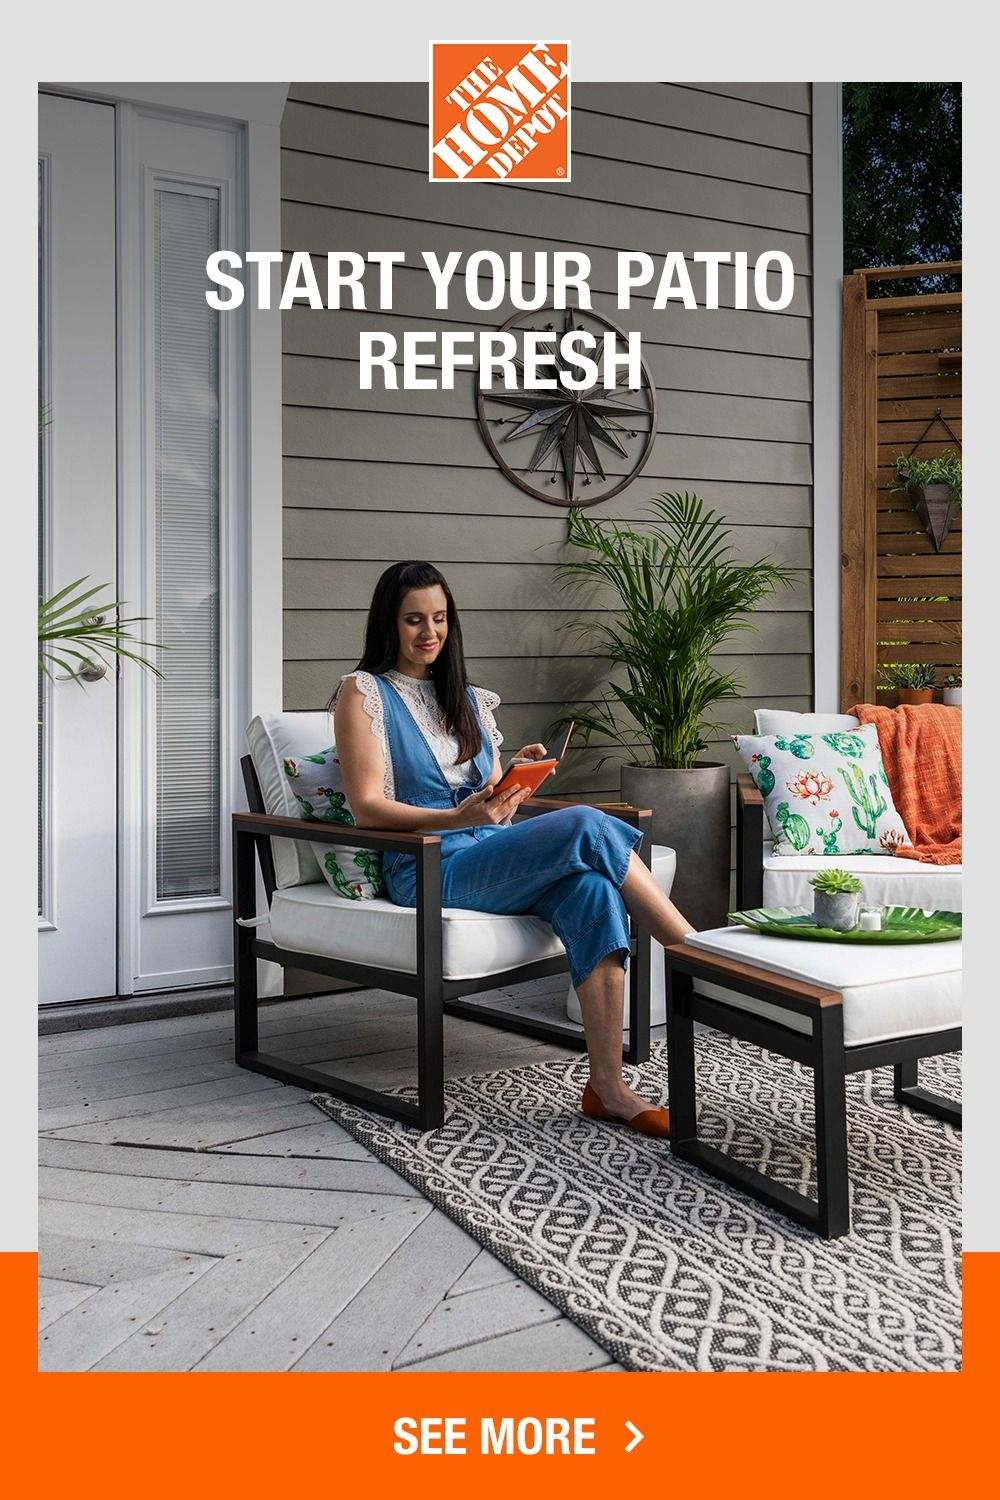 From start to finish, The Home Depot has everything to make creating your perfect patio easy.